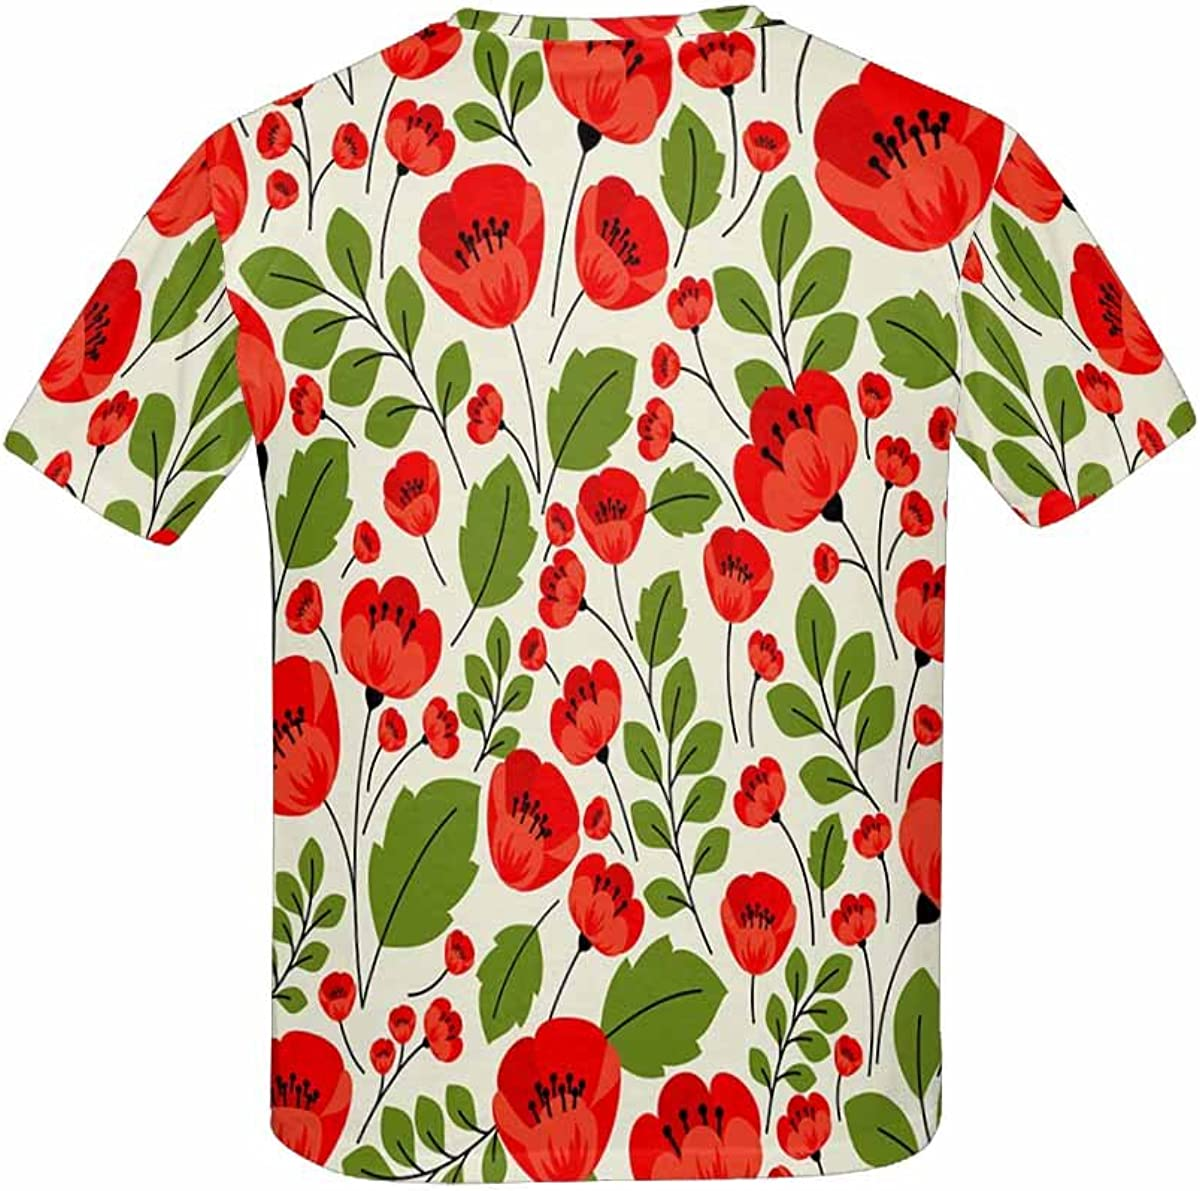 XS-XL INTERESTPRINT Kids T-Shirt Red Poppies Pattern in Style with Poppy Flowers